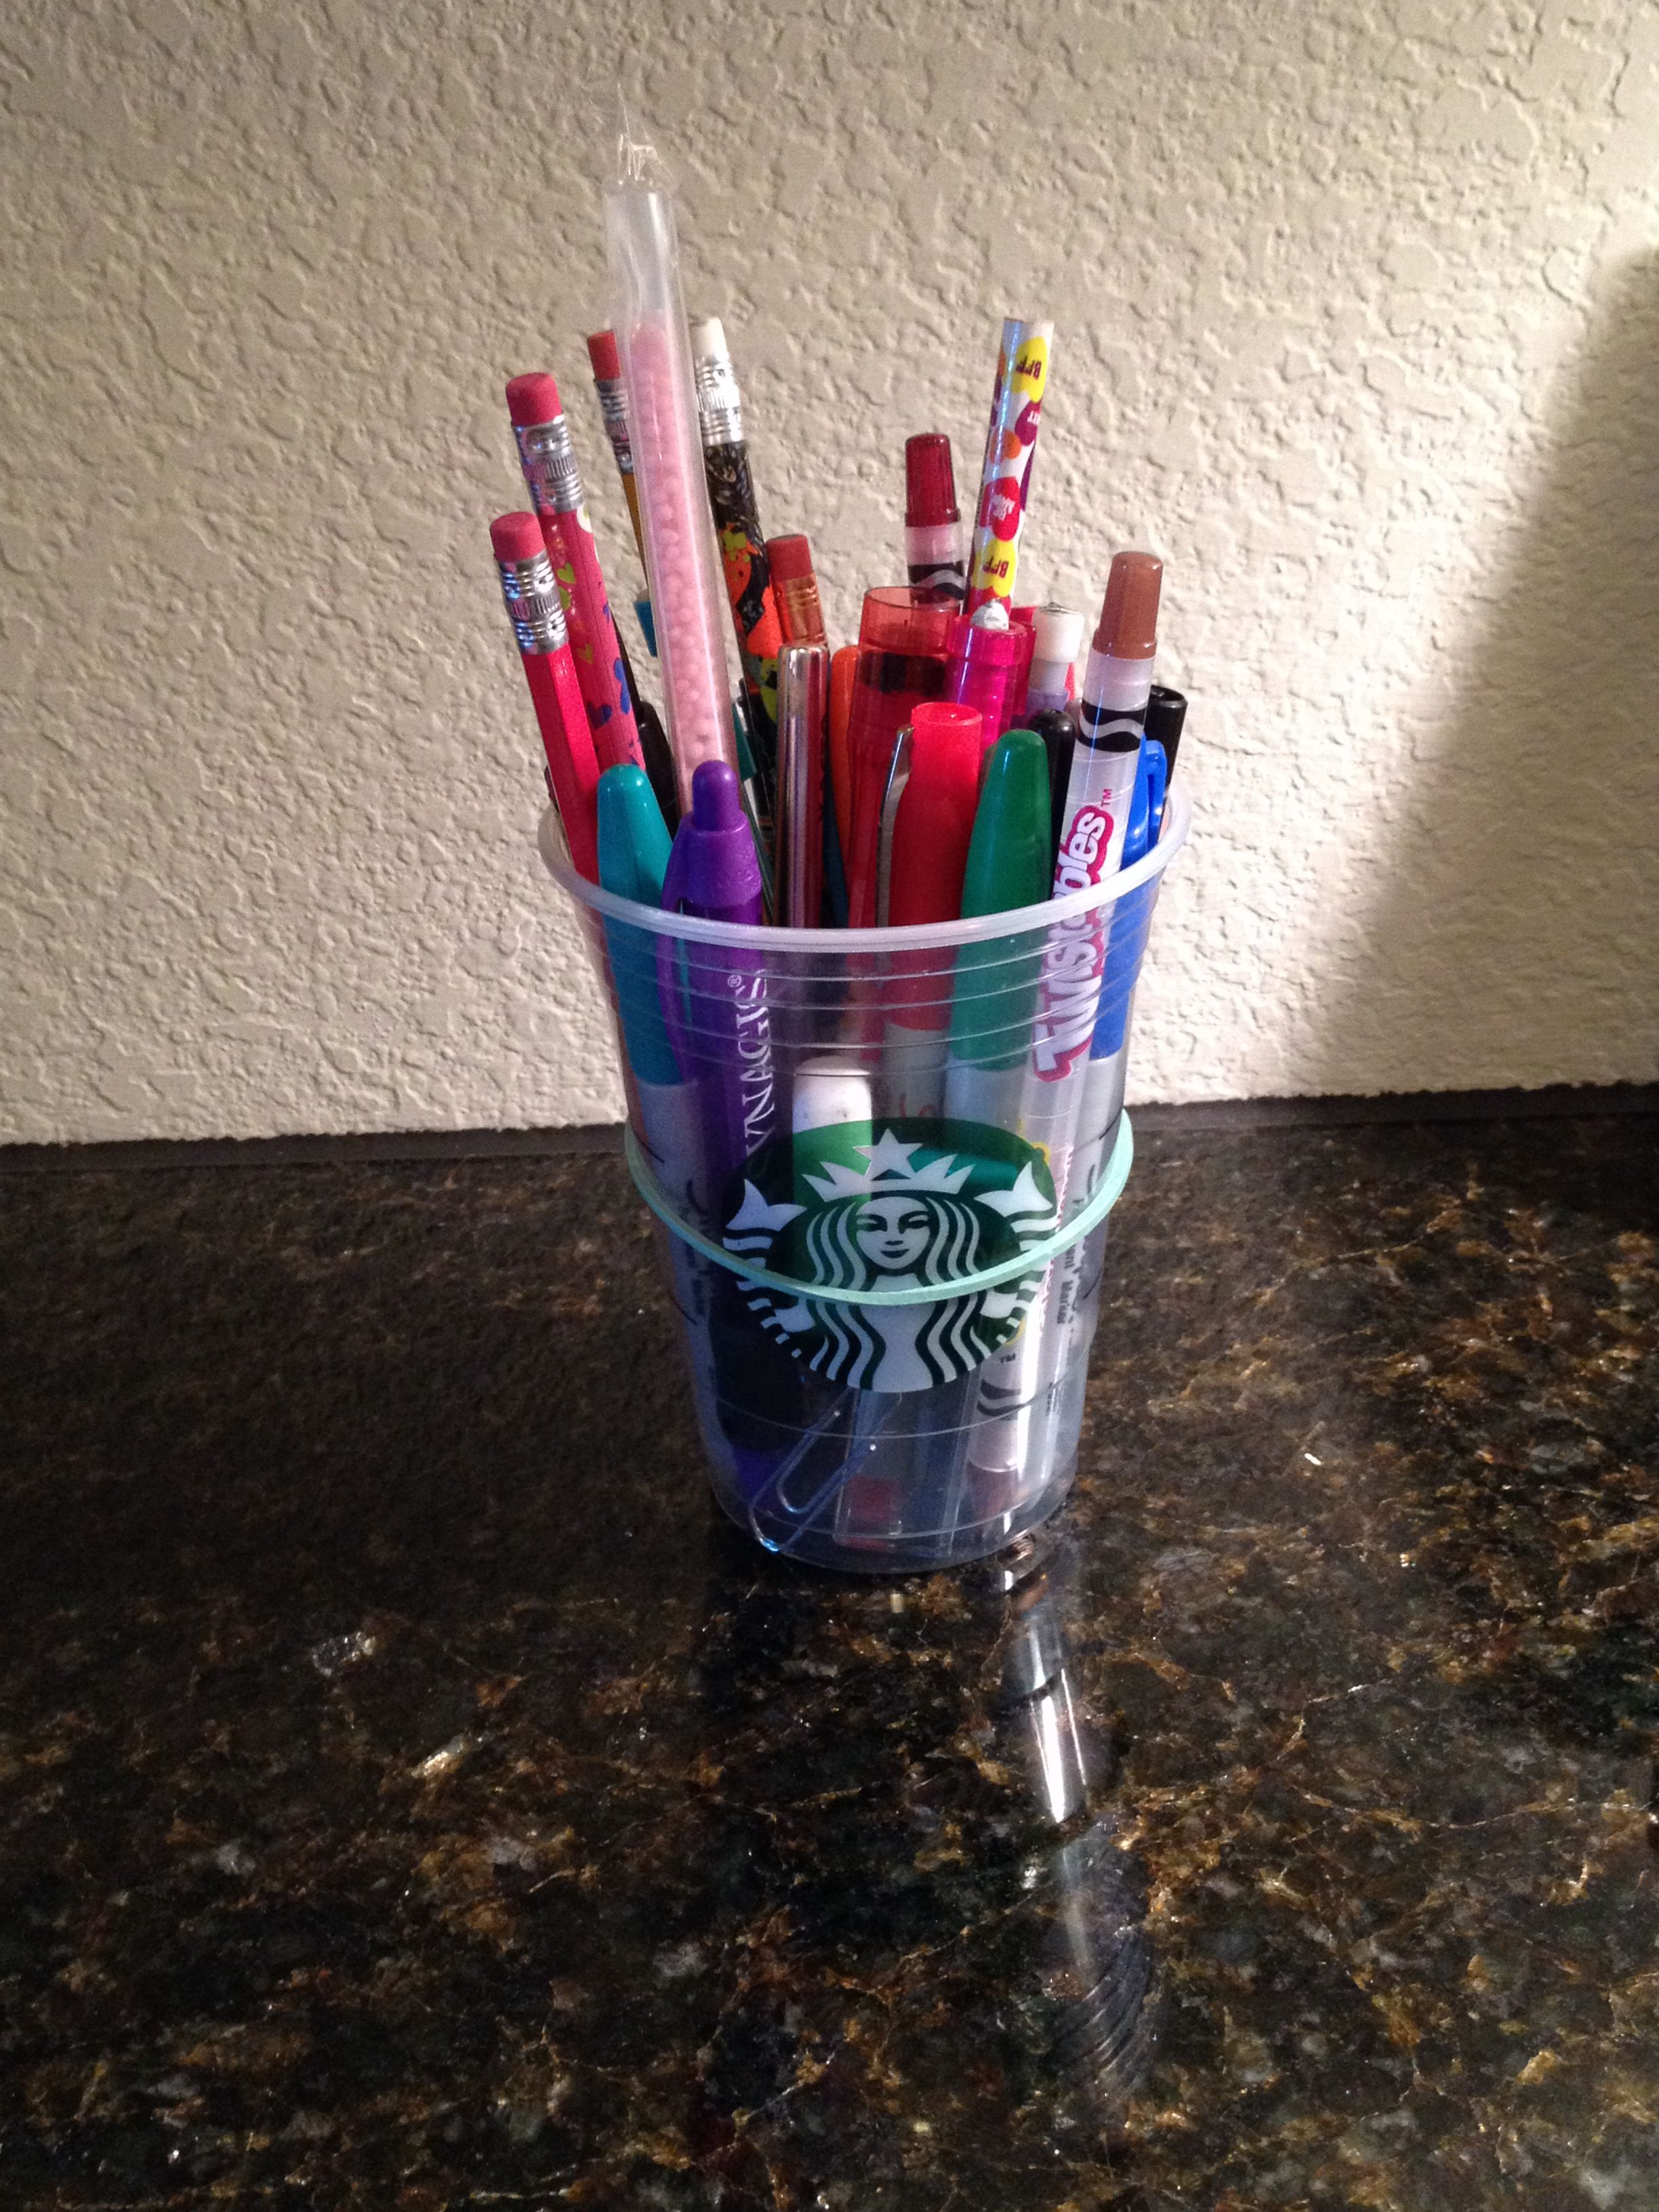 Reuse an old starbucks cup grande is the best for the job